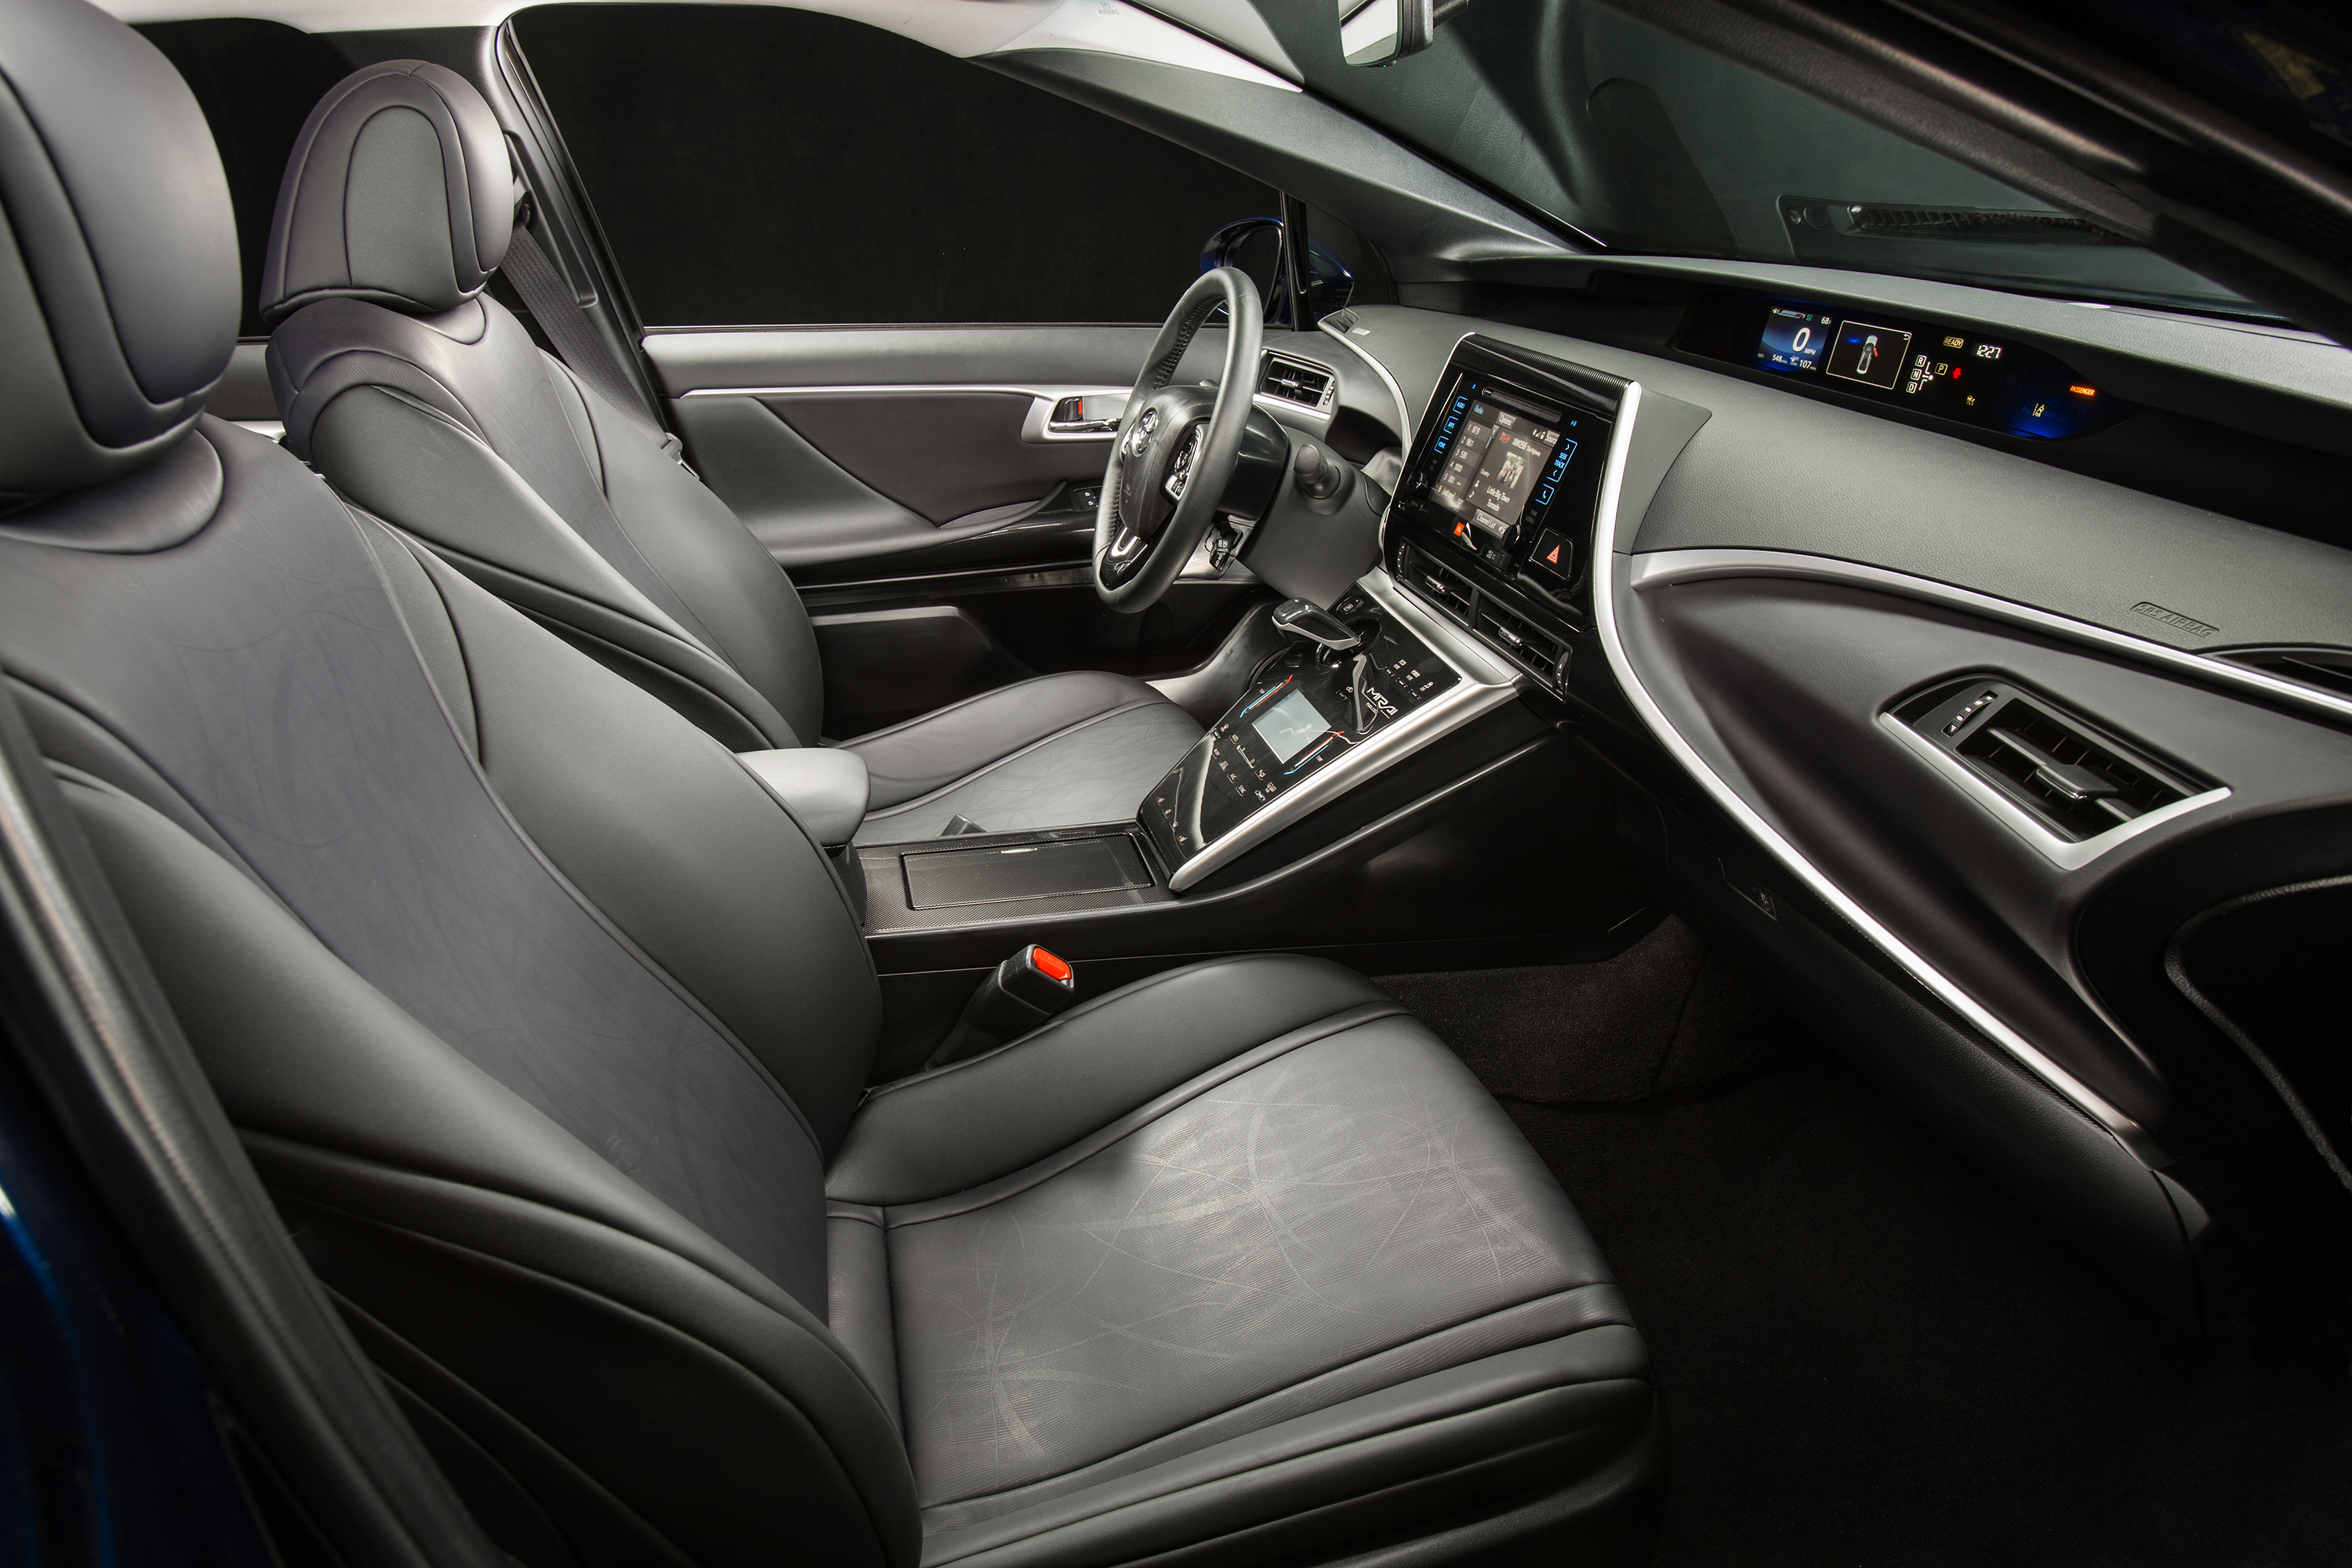 The insides of the Mirai are far upgraded from the Prius; the Lexus-level seats offer great comfort. It's the least Toyota could do for the $57,500 price tag.